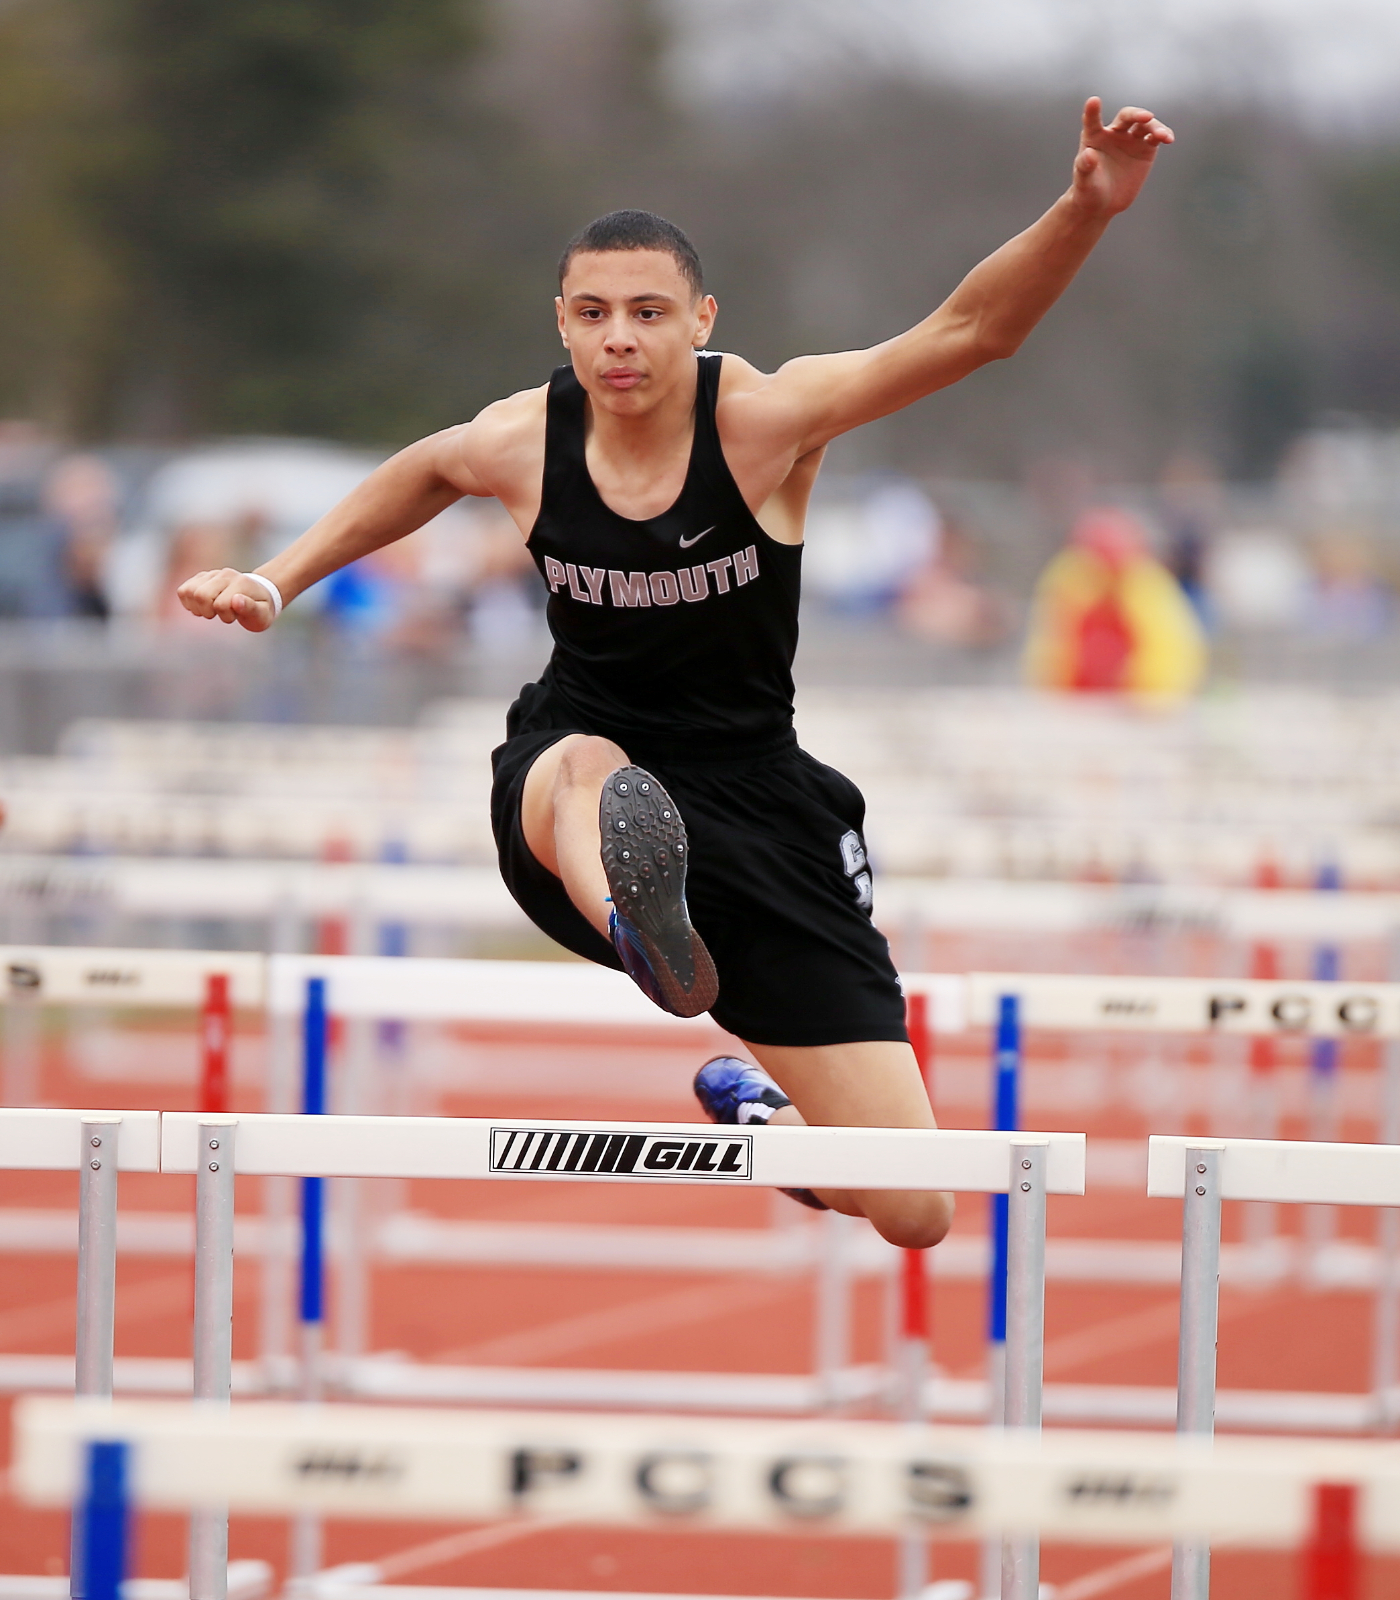 Boys Track and Field Meeting (1/28/2020)